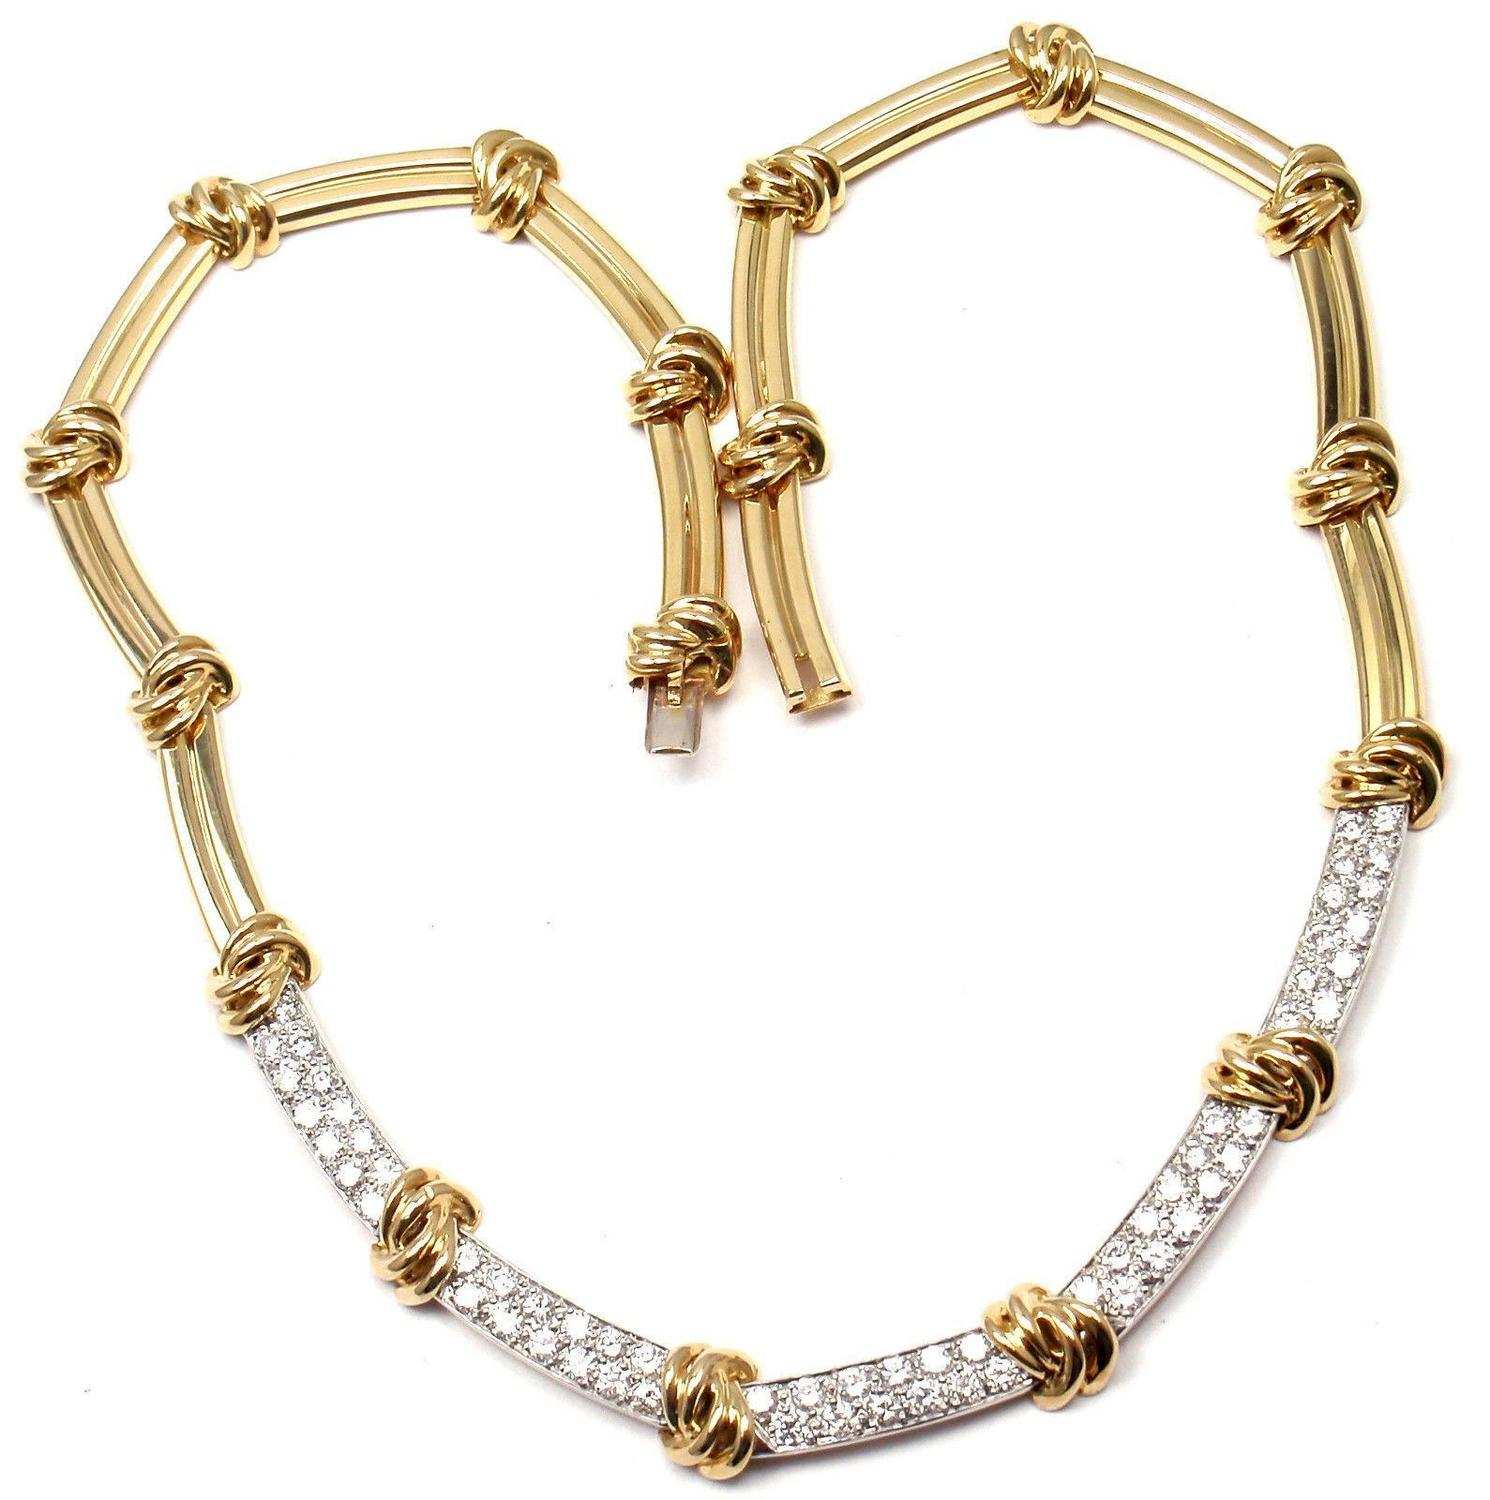 Tiffany and co diamond gold necklace for sale at 1stdibs for New mom jewelry tiffany